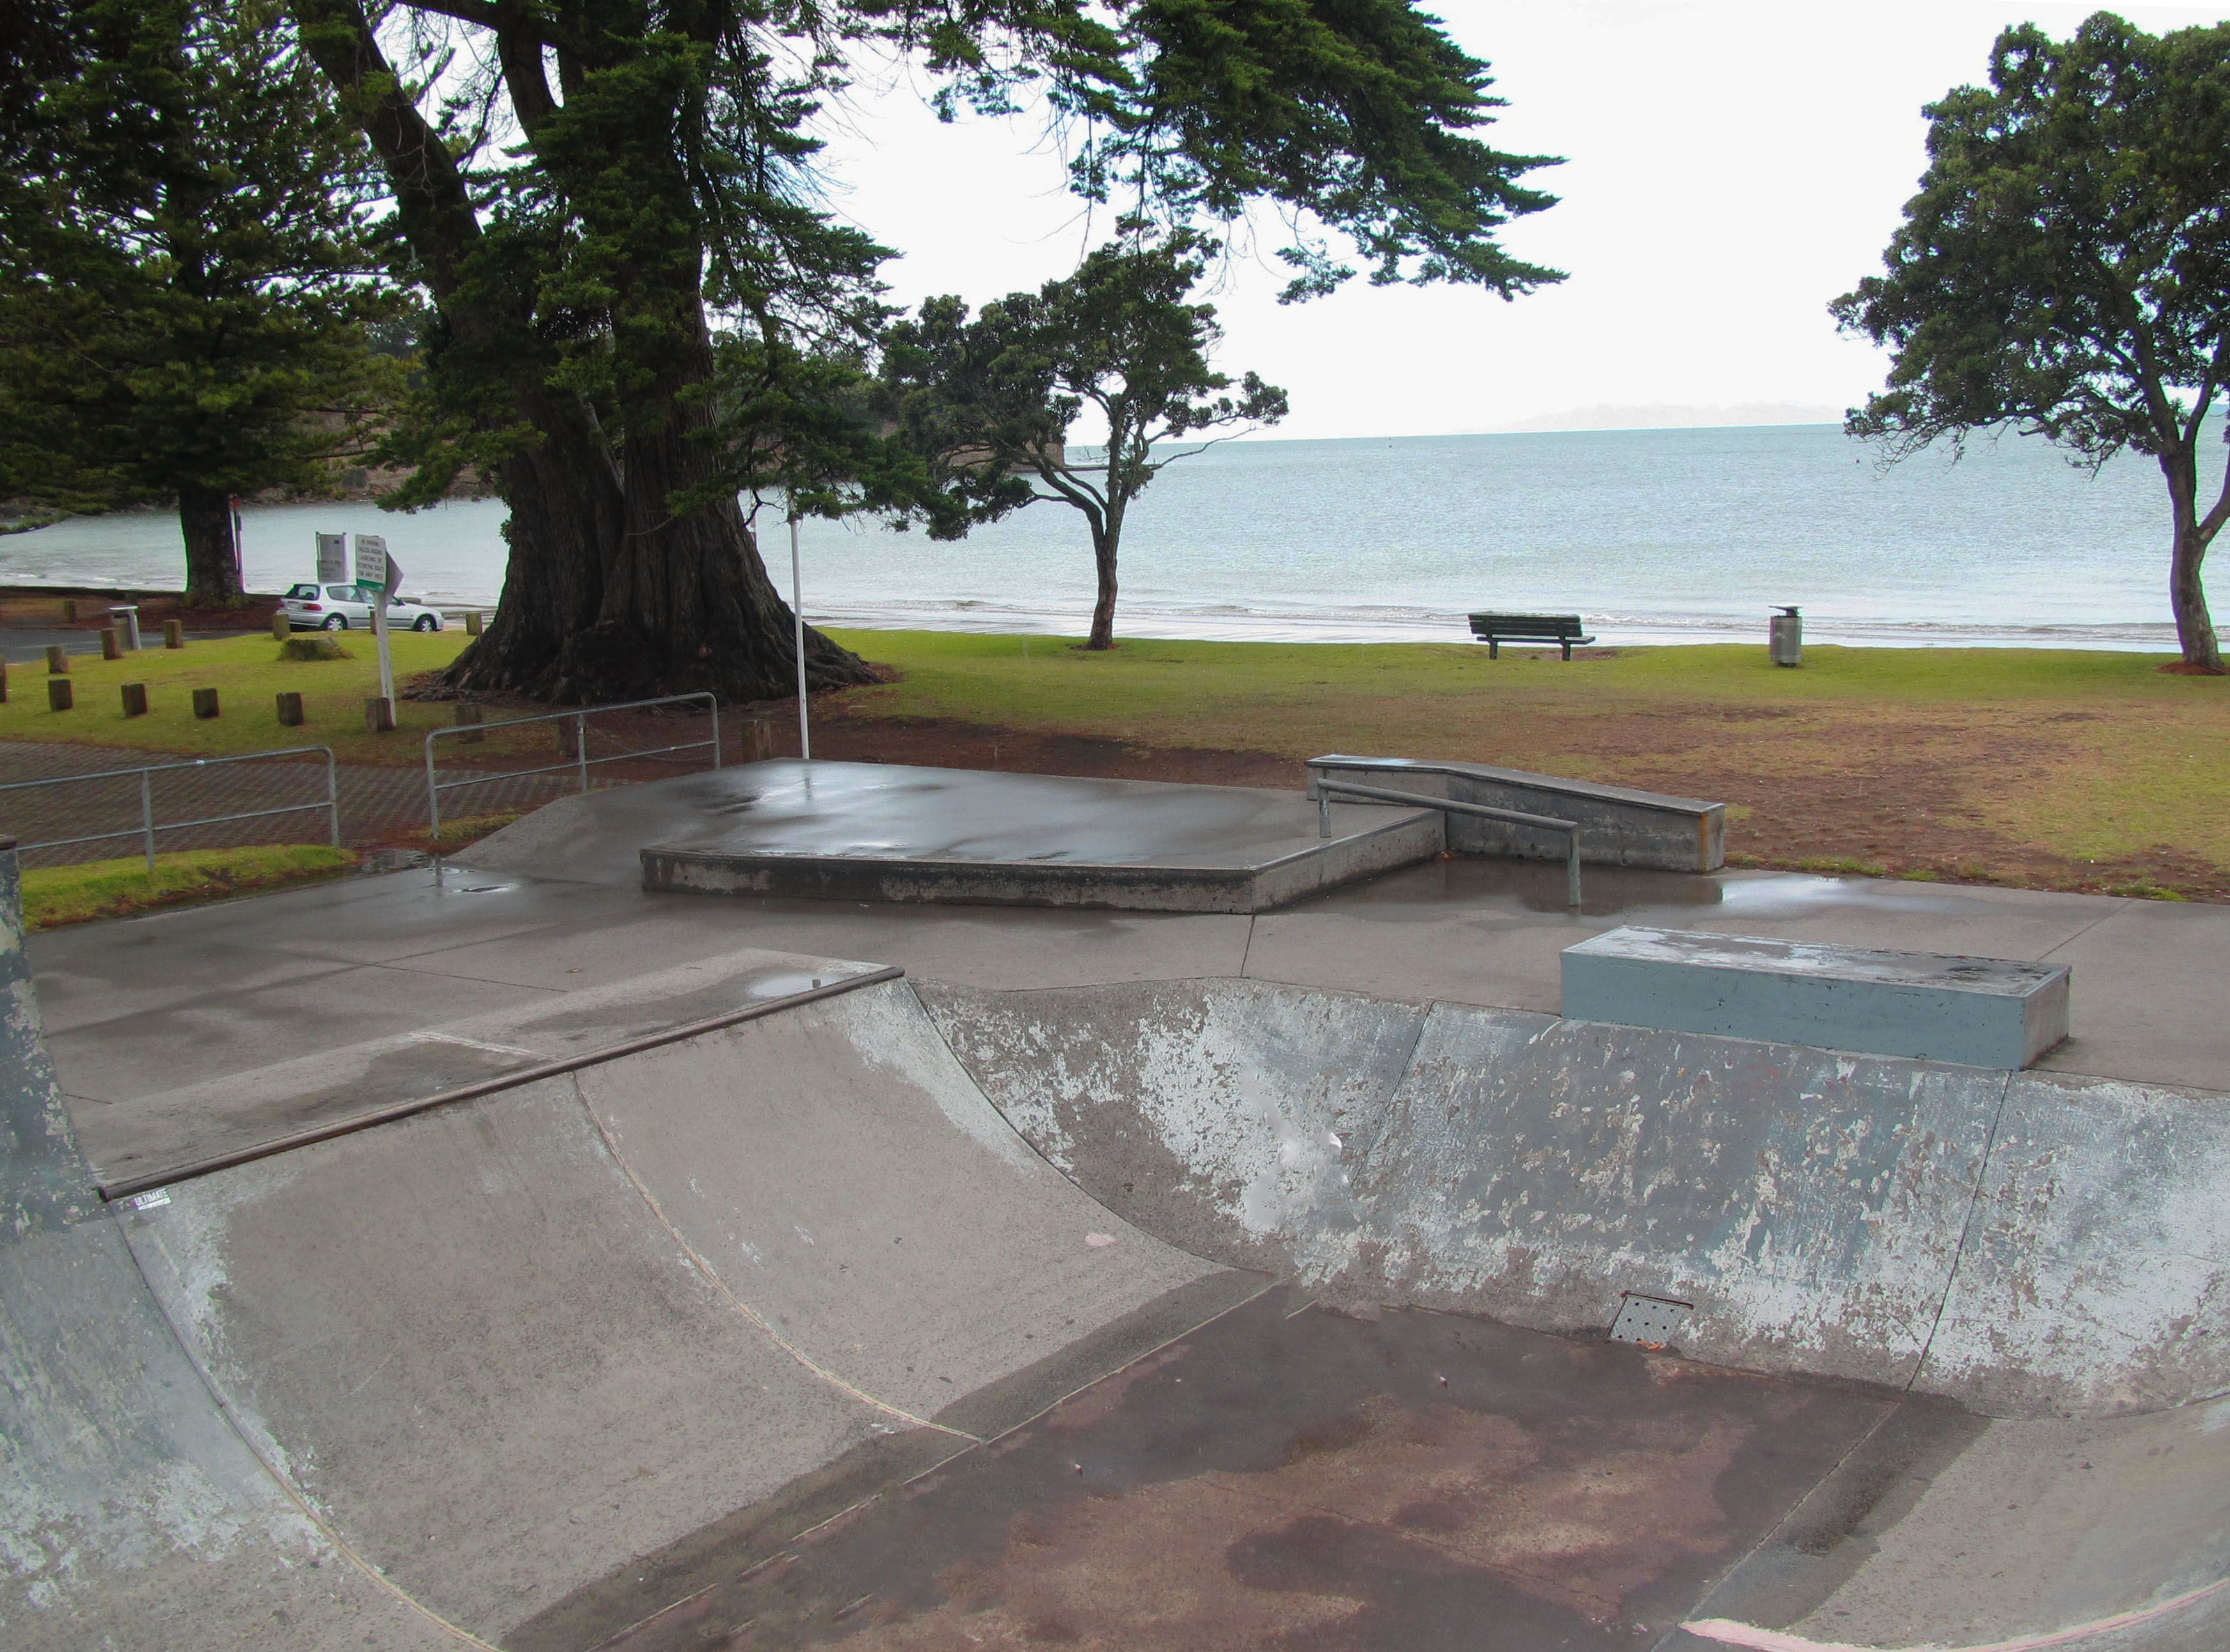 The local skate park on Browns Bay